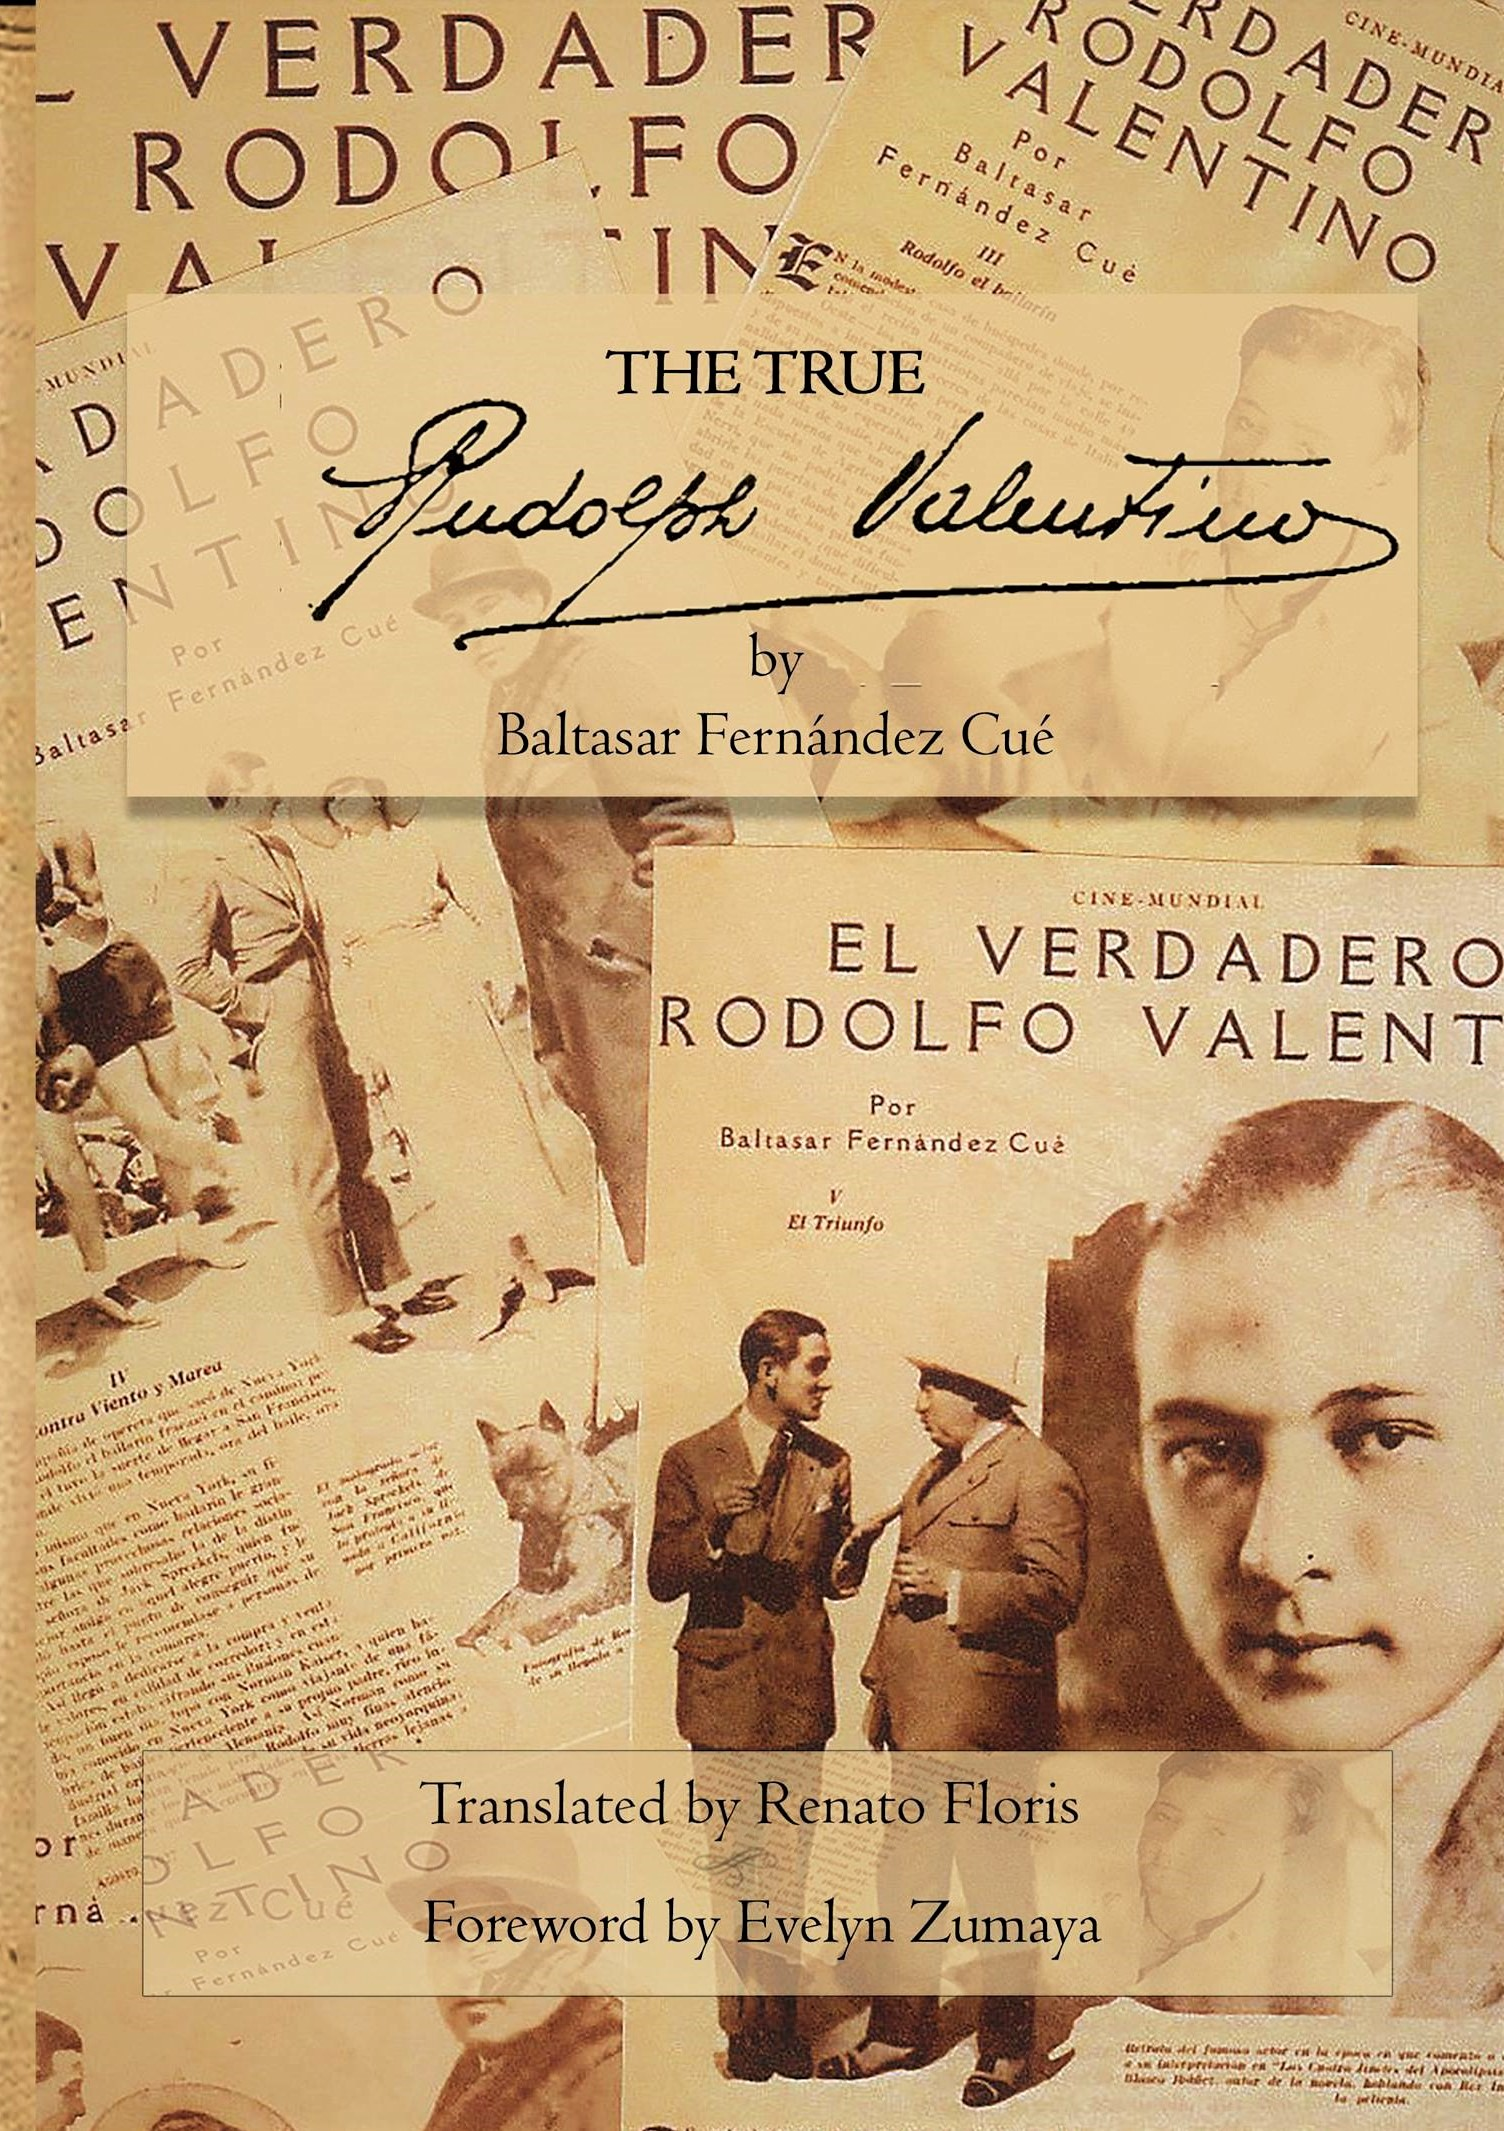 The True Rudolph Valentino